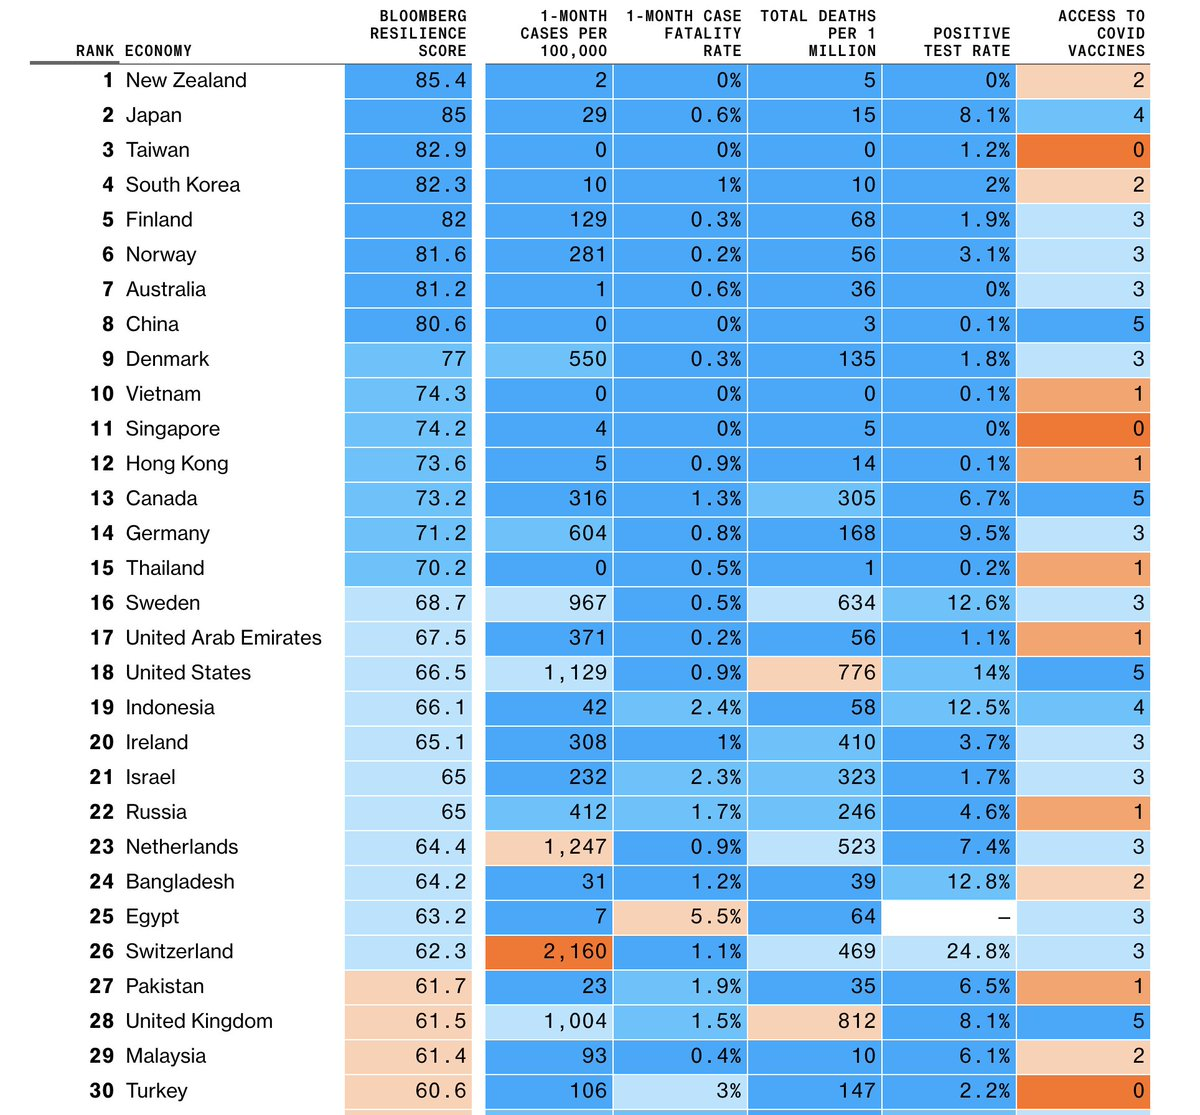 """Transmissible on Twitter: """"The #COVID19 Resilience Ranking is published by  Bloomberg: https://t.co/ZUyG6h8BNA… """""""